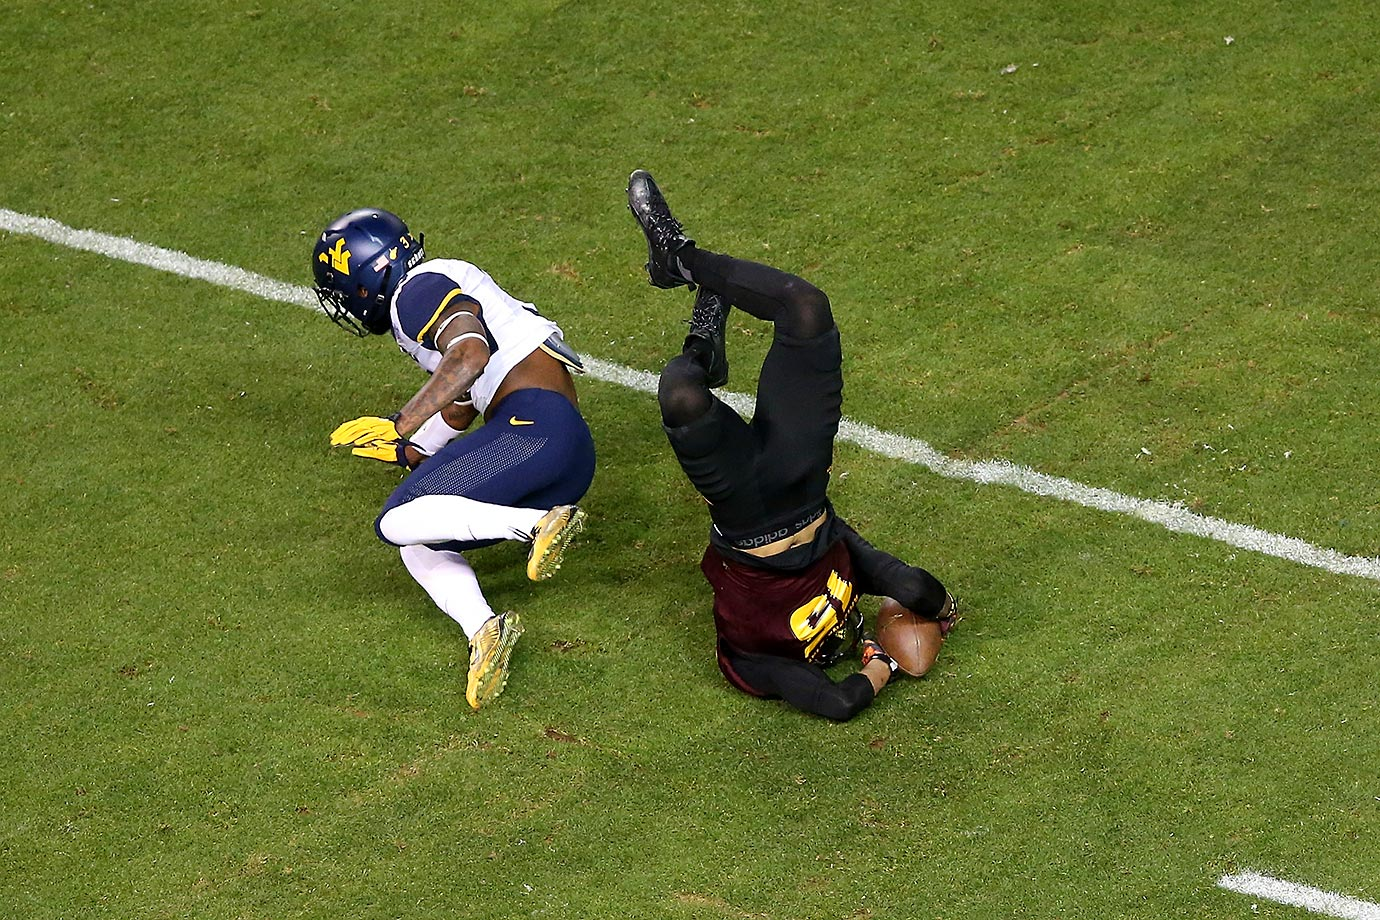 Devin Lucien of ASU is upended by Ricky Rumph of West Virginia.